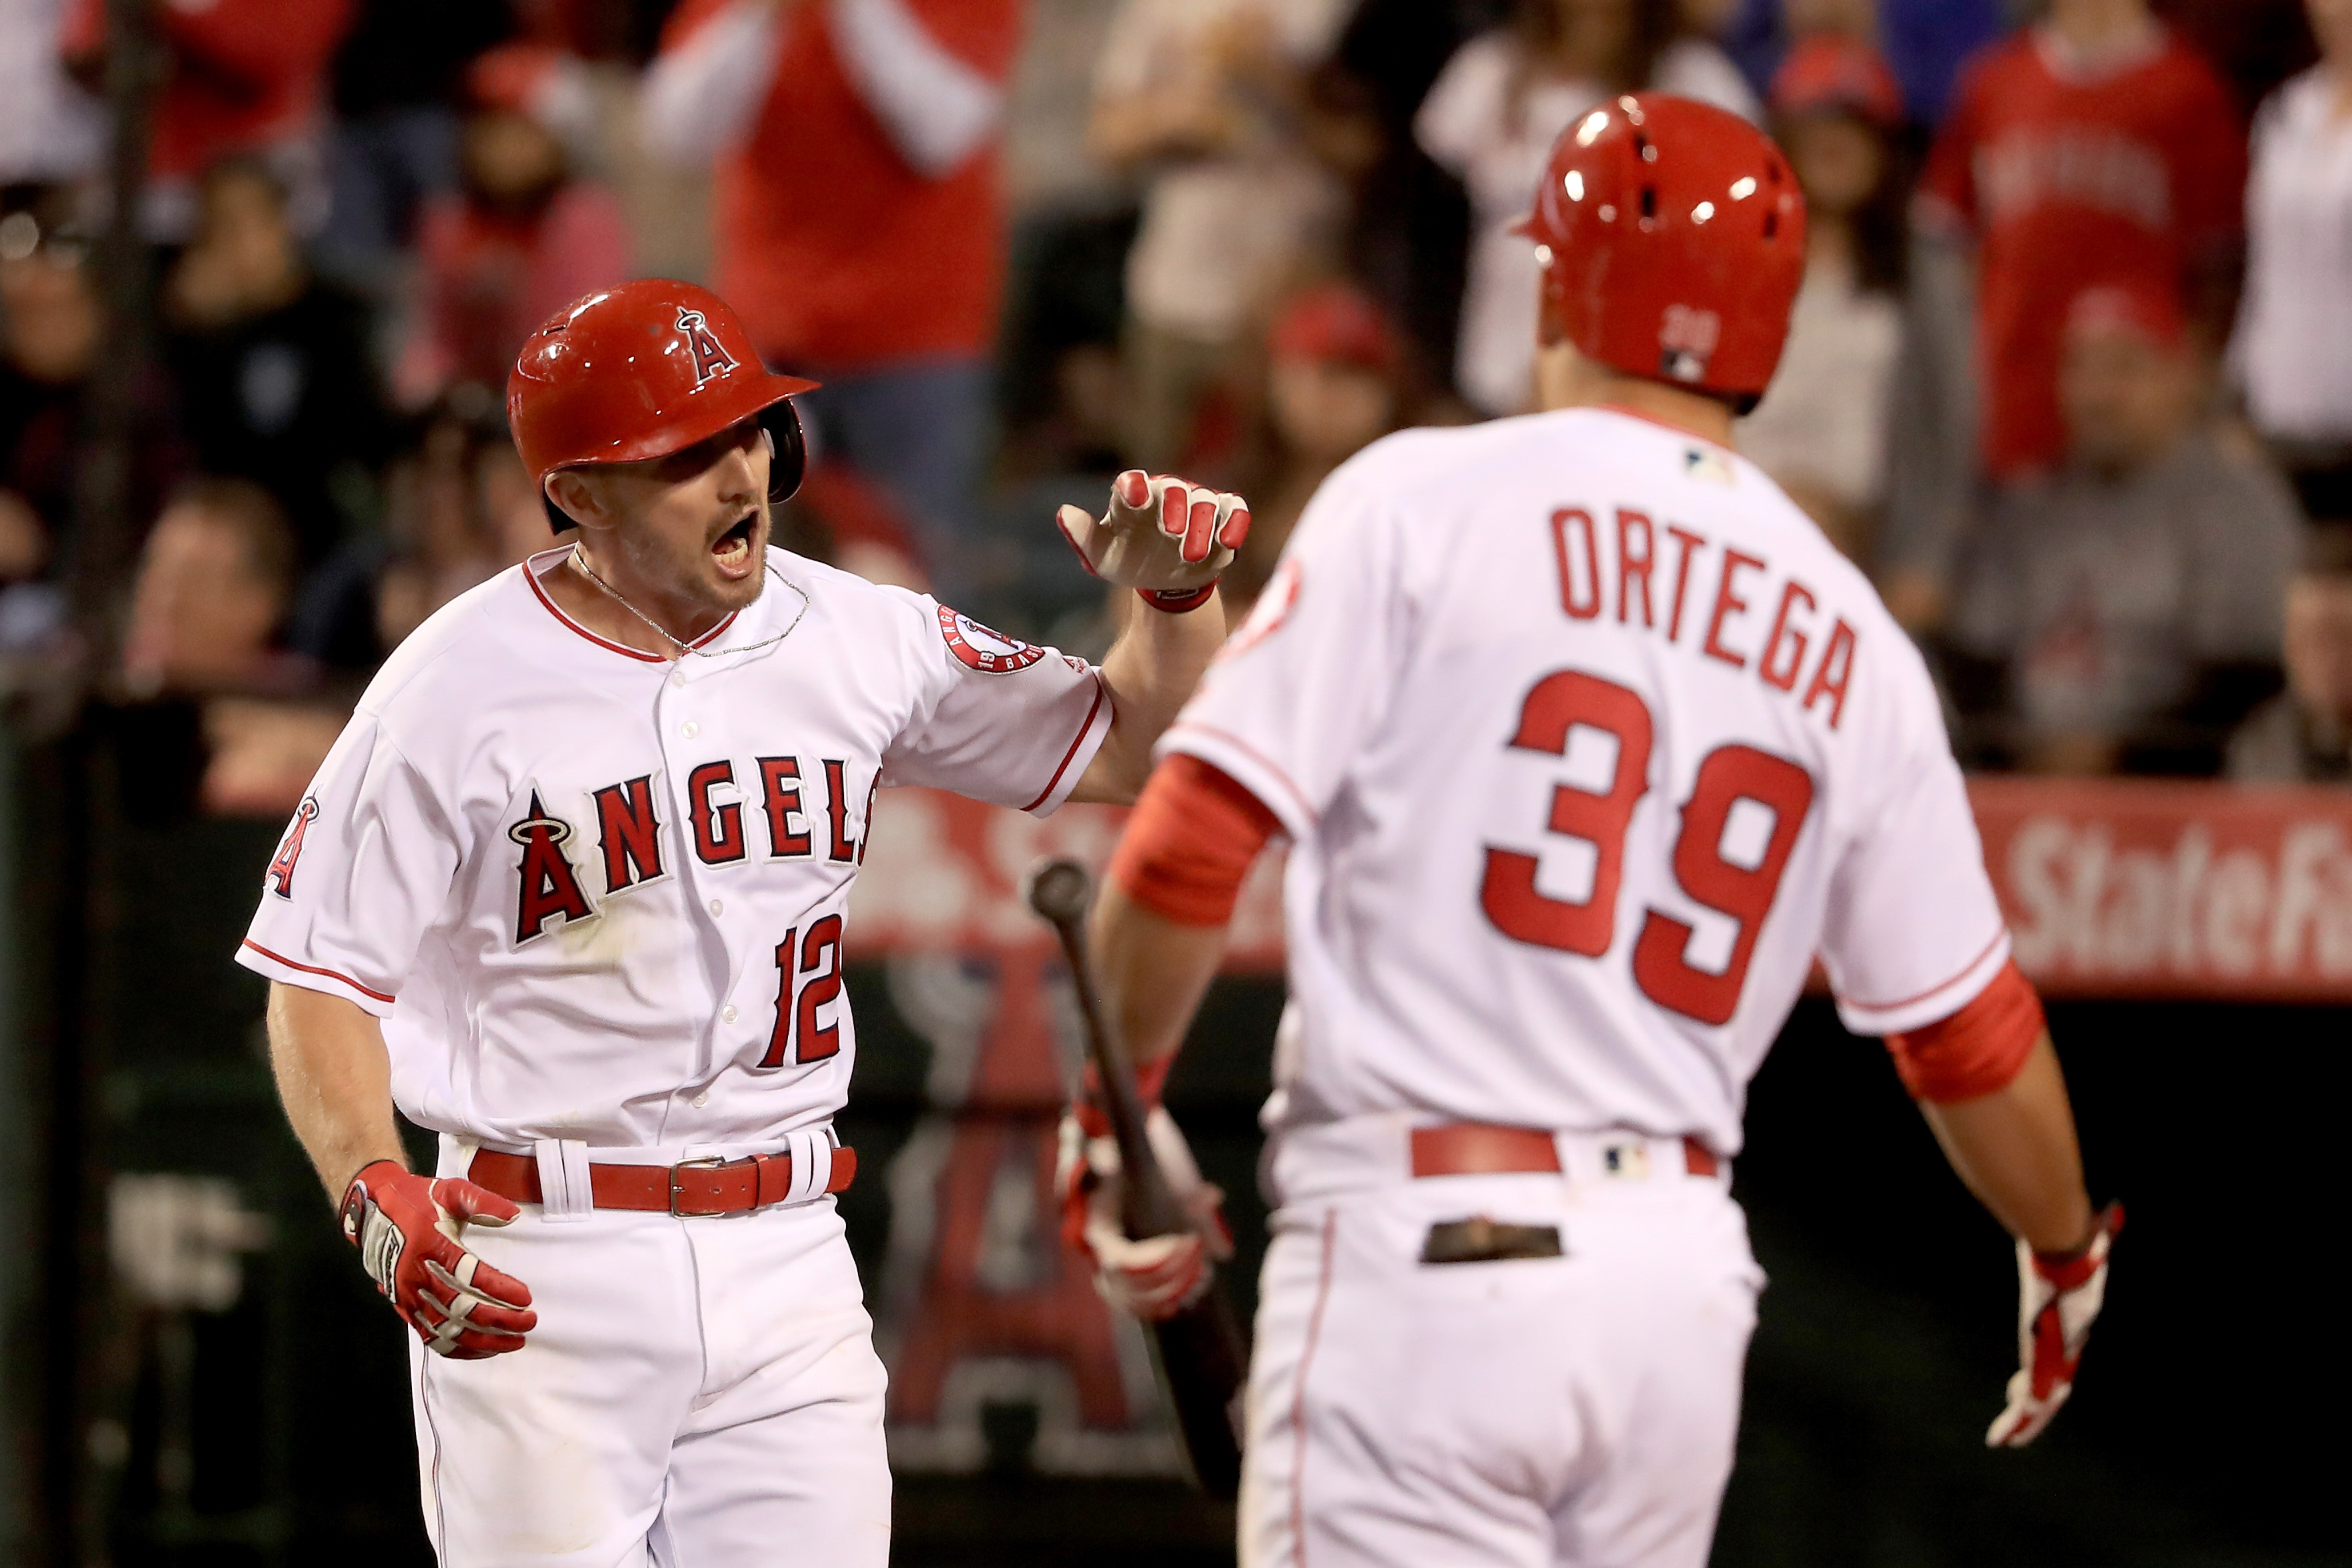 during the  inning of a baseball game between the Los Angeles Angels of Anaheim and the Kansas City Royals at Angel Stadium of Anaheim on April 26, 2016 in Anaheim, California. (Photo by Sean M. Haffey/Getty Images)